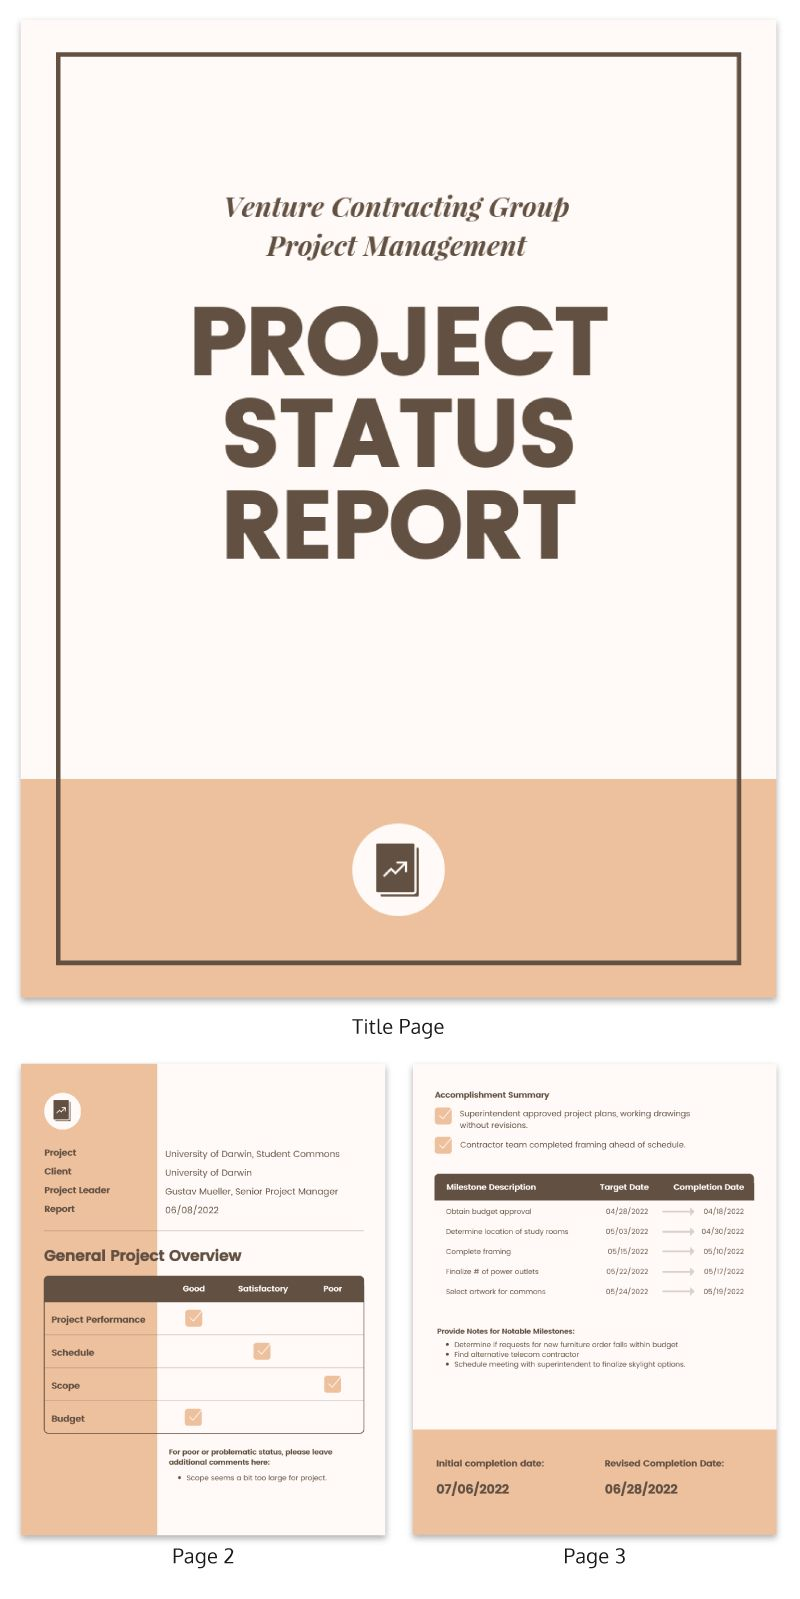 005 Awesome Project Management Statu Report Template Free Example  Excel Weekly WordFull